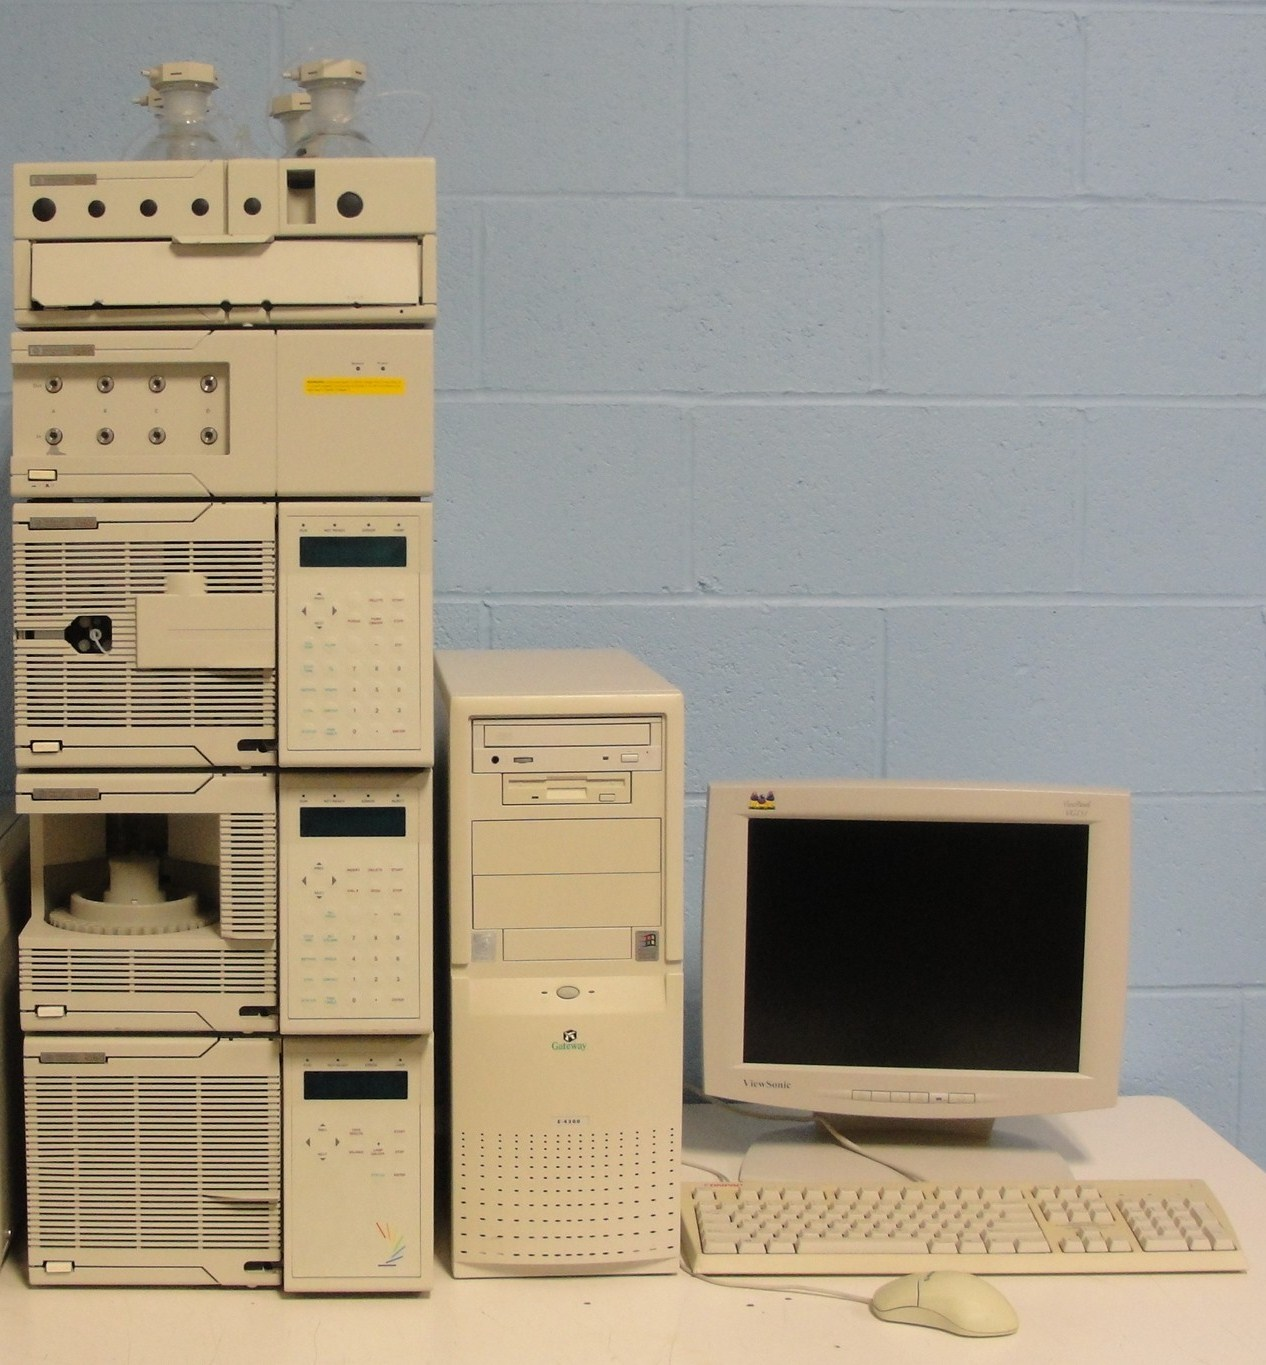 Hewlett Packard 1050 Series HPLC System Image